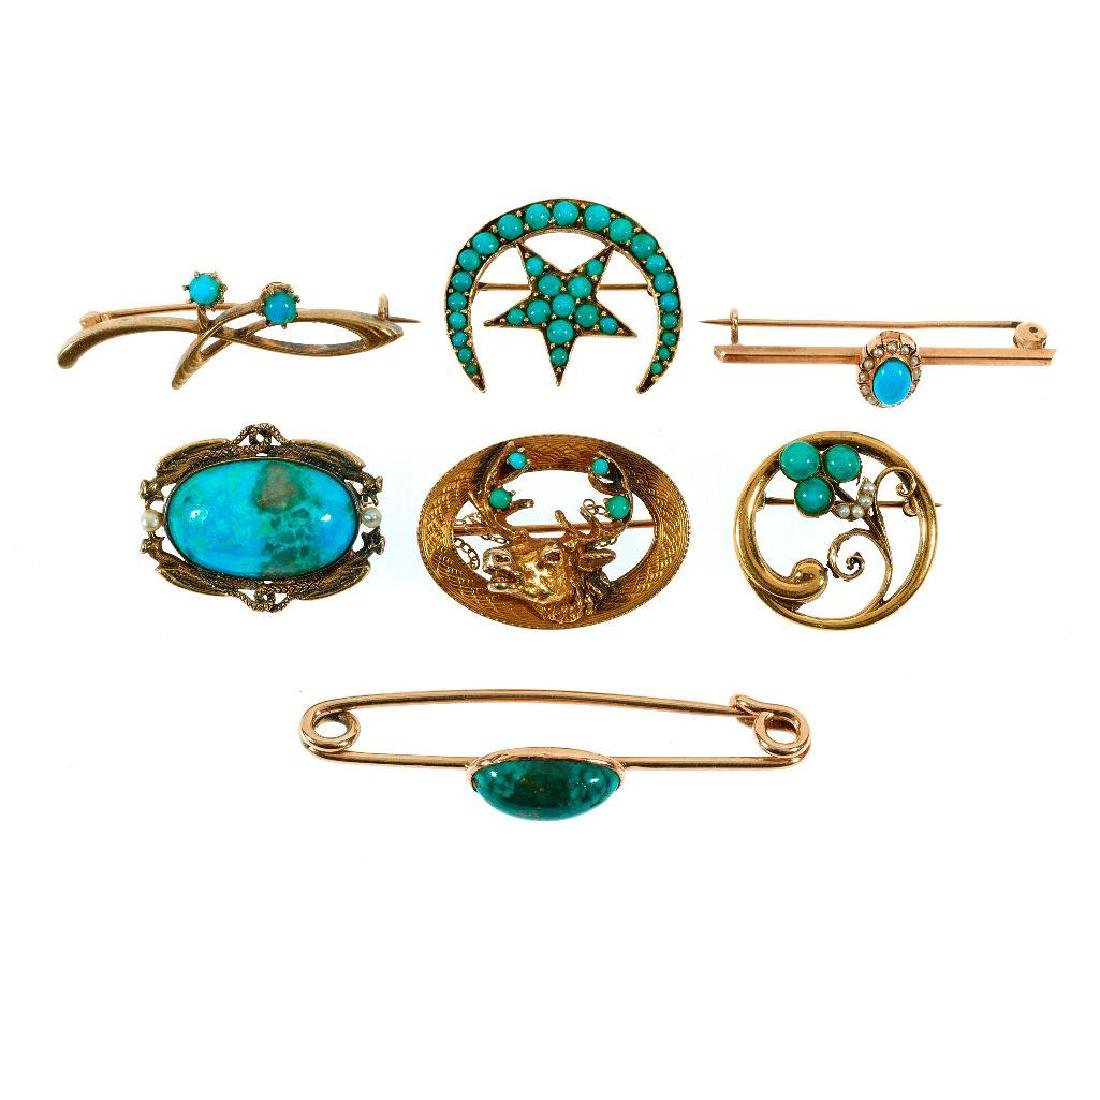 Collection of 7 turquoise and 14k gold brooches